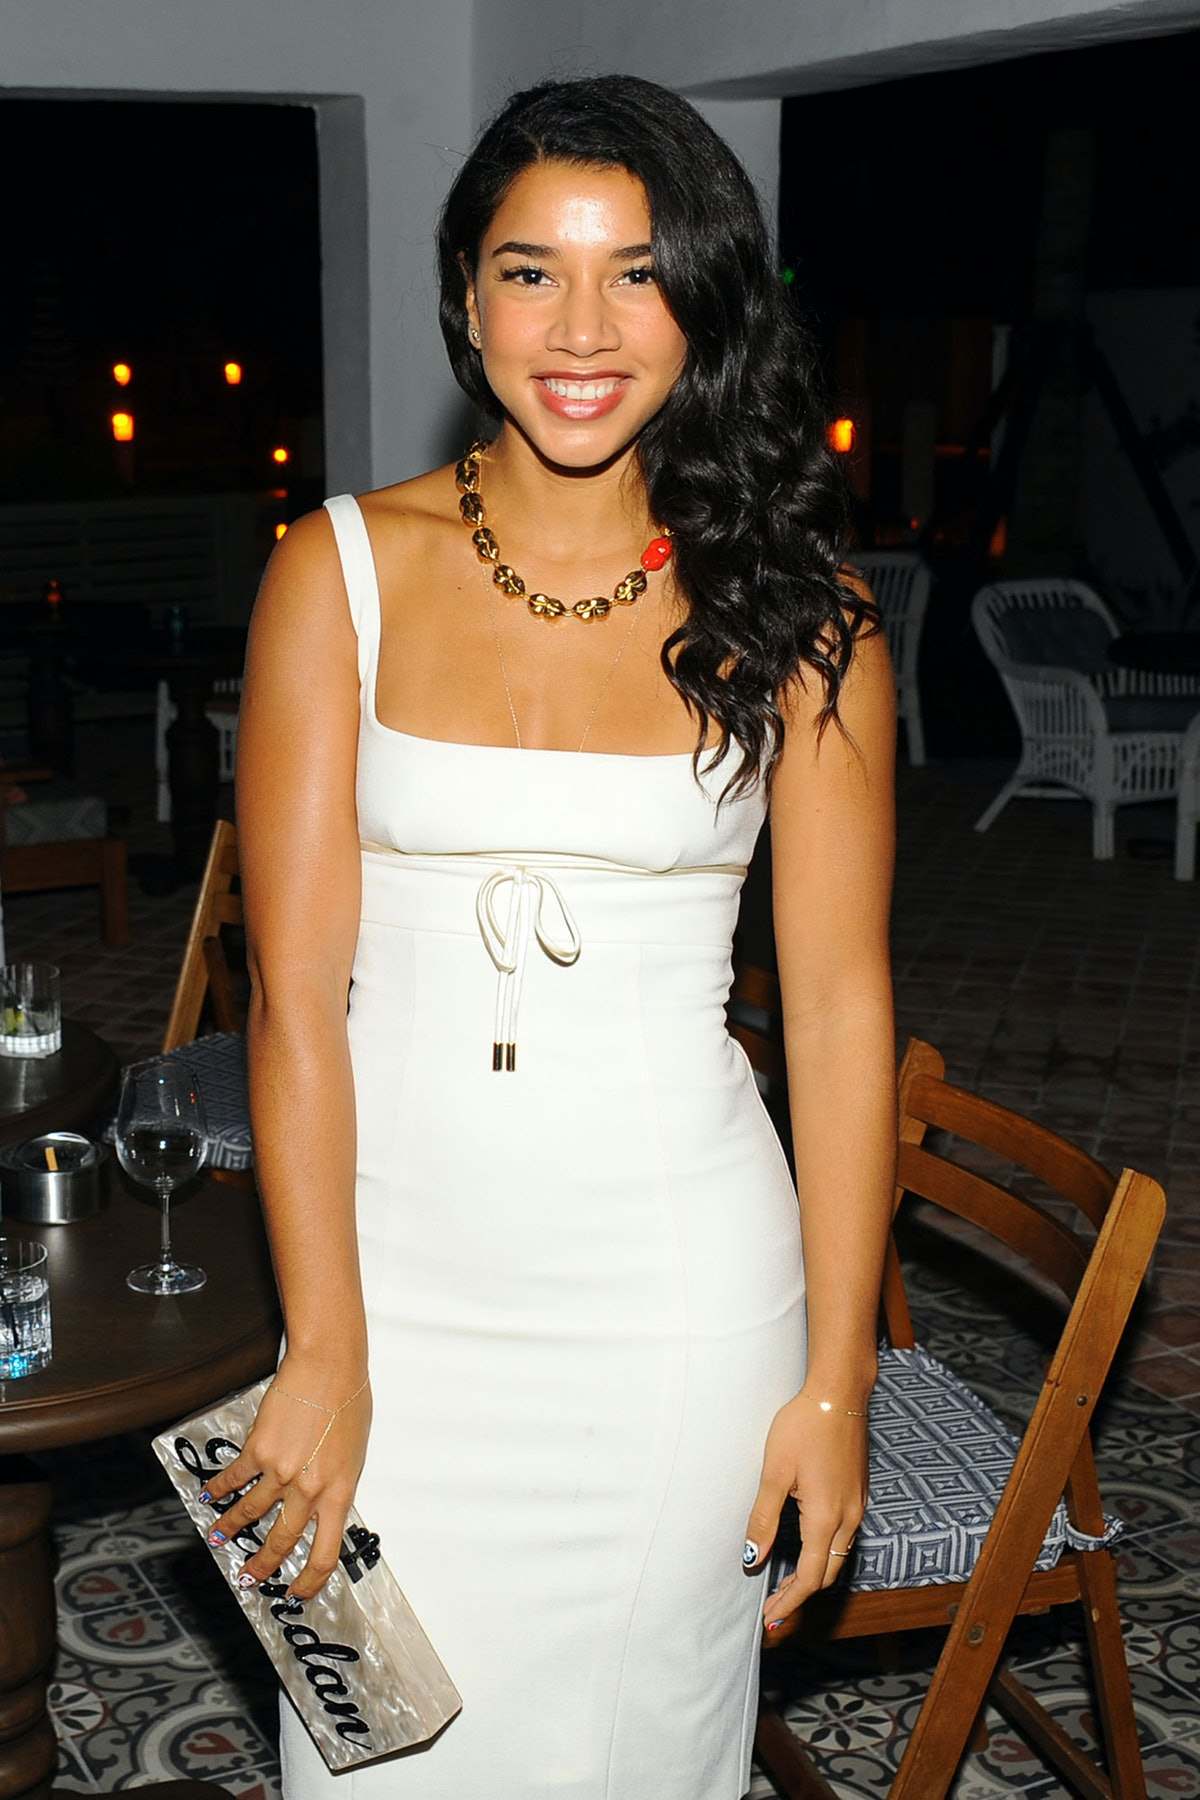 Hannah Bronfman attends the Dsquared and Performa Art Basel event